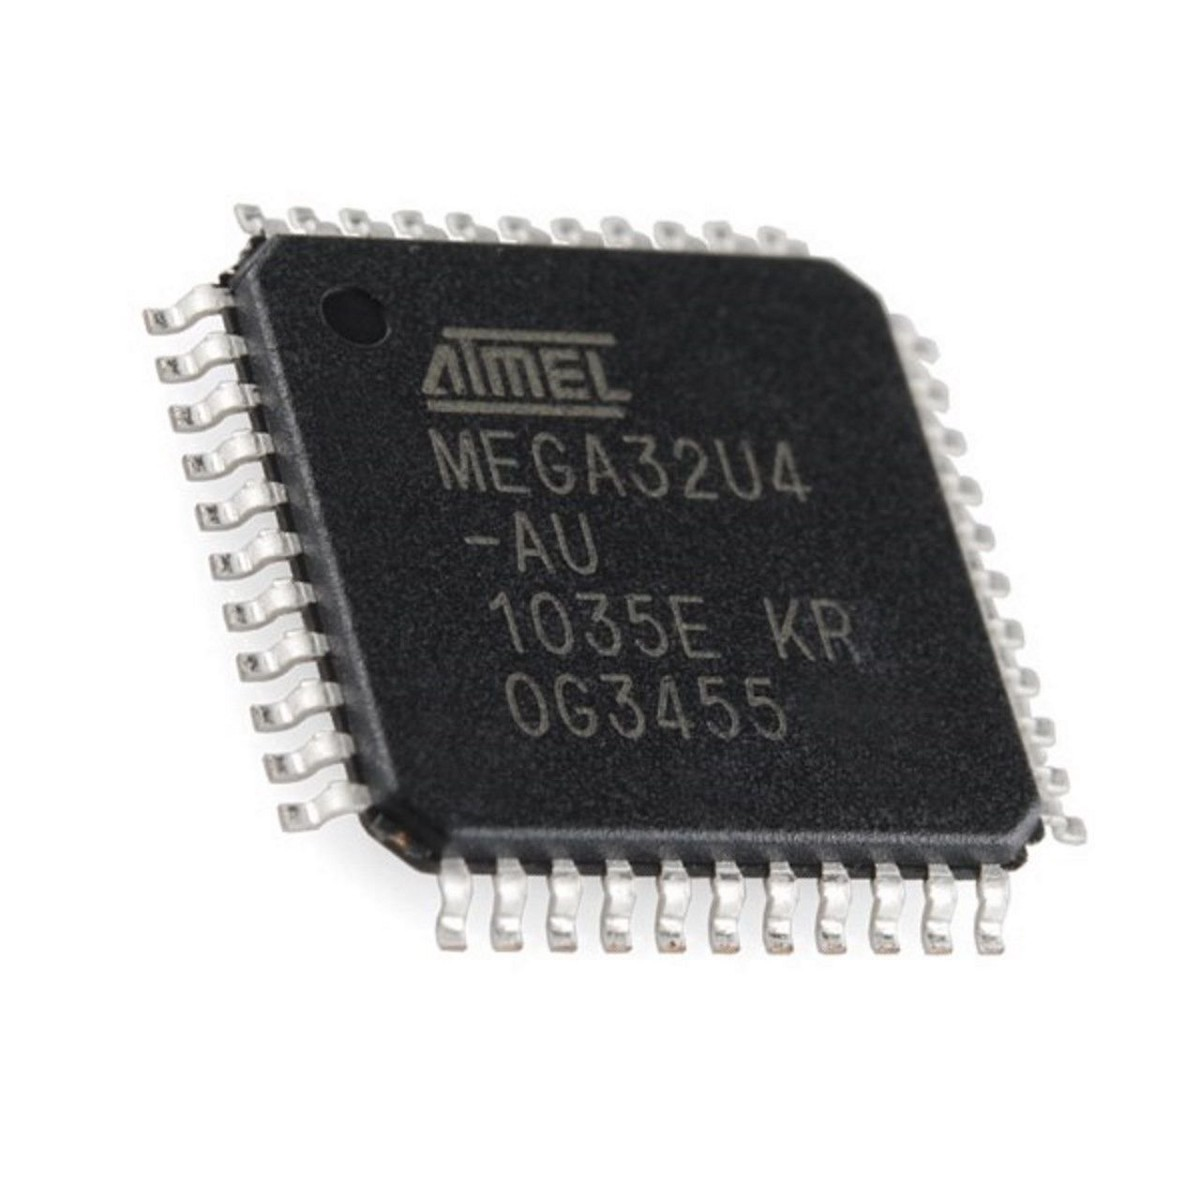 Fpgas Socs Microcontrollers A Quick Rundown Of Iot Devices Within These Pages Youll Find Circuits About The Avr Atmel Atmega32u4 Au Microcontroller From Tindie